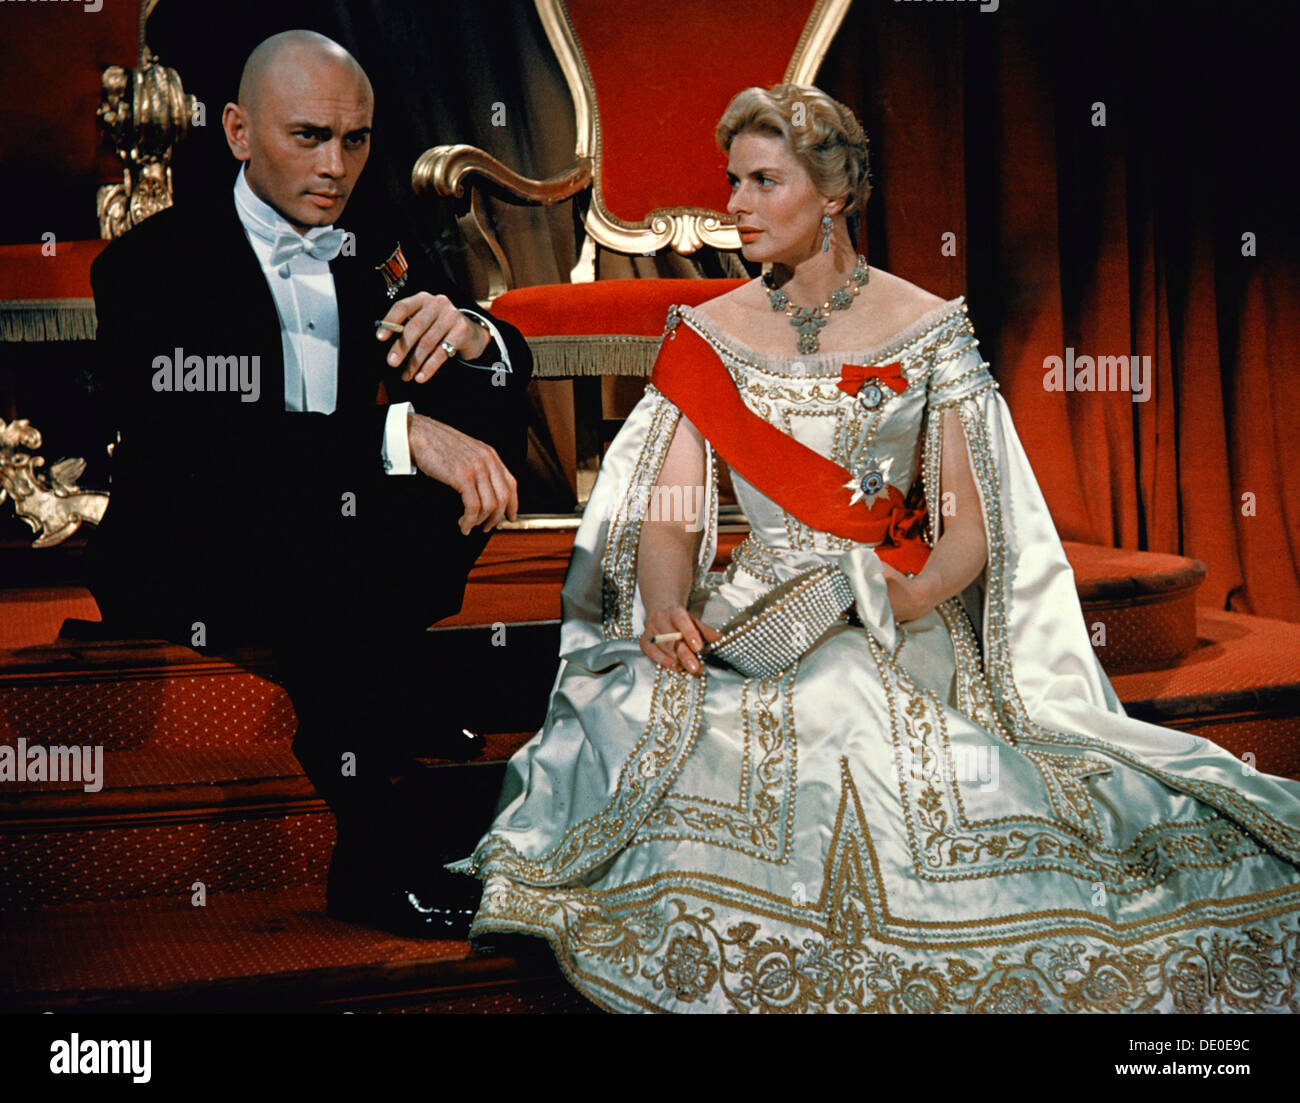 Yul Brynner and Ingrid Bergman in the film 'Anastasia', 1956. Directed by Anatole Litvak, the film tells the story of a young woman, played by Ingrid Bergman (1915-1982), who is persuaded by a group of Russian emigres, the leader of whom is played by Yul Brynner (1920-1985), into passing herself off as the Grand Duchess Anastasia, daughter of the murdered Tsar Nicholas II. - Stock Image